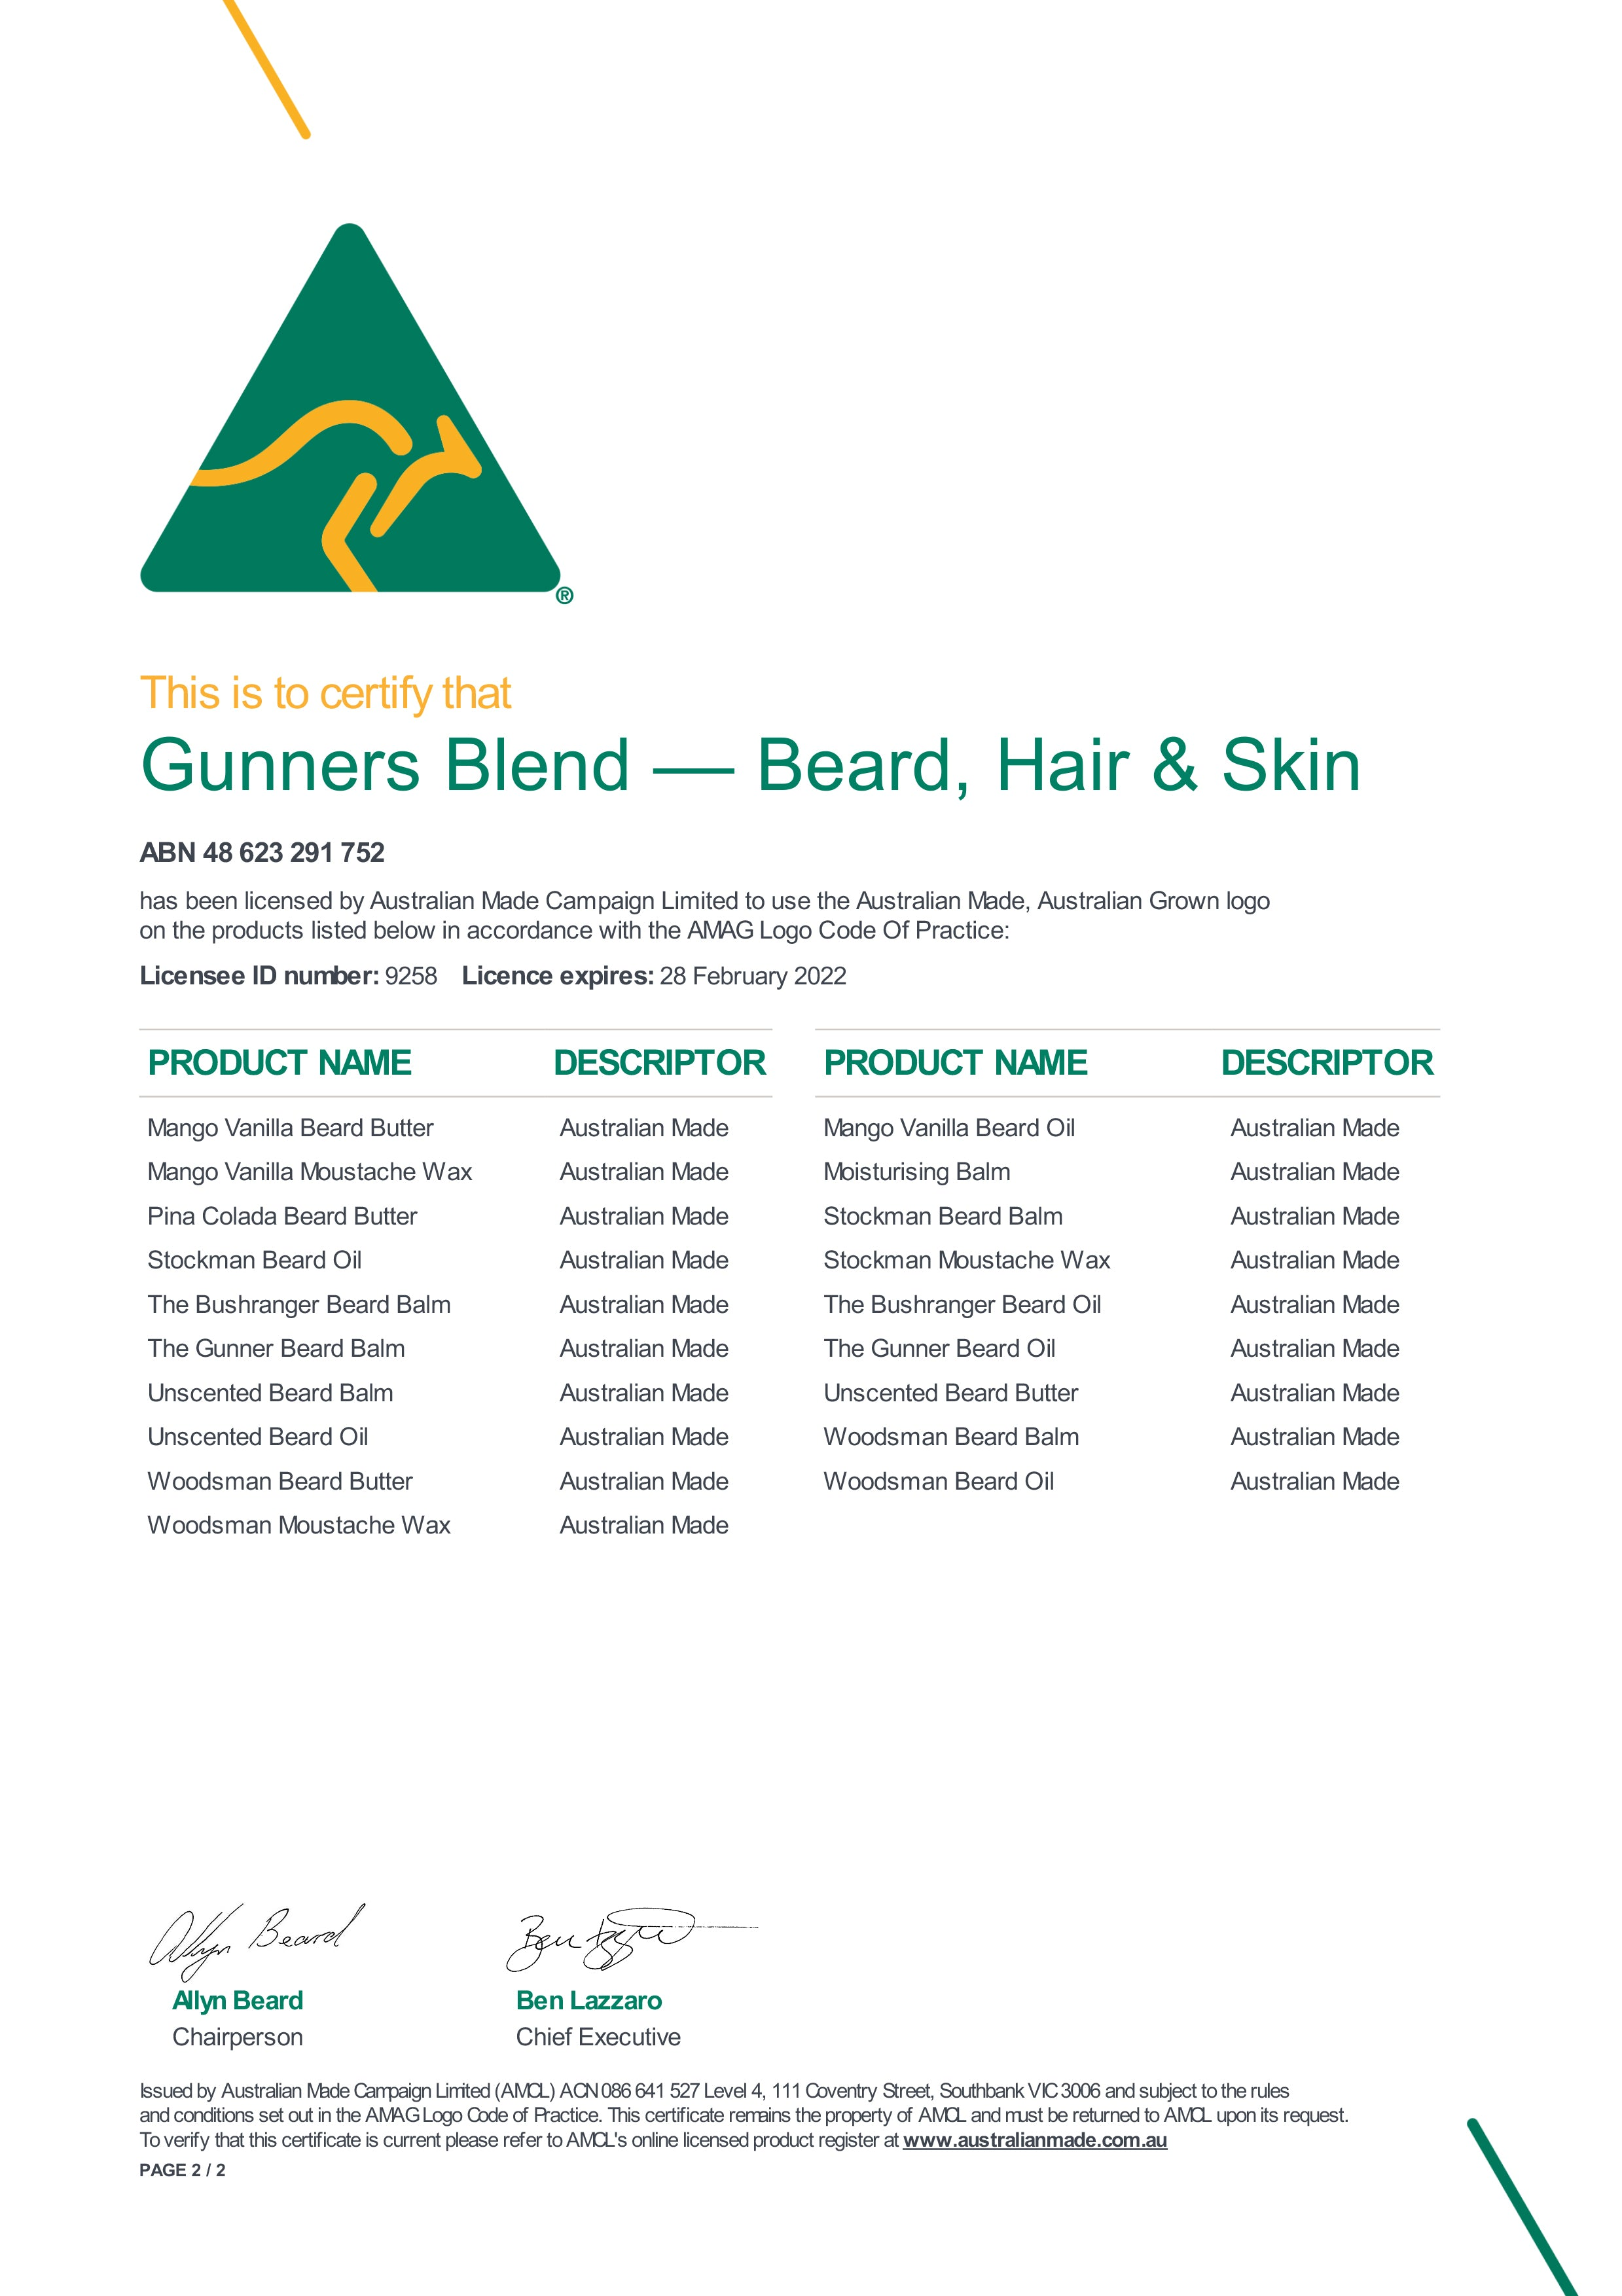 Gunners Blend Beard Hair And Skin - Australian Made and Owned Certificate